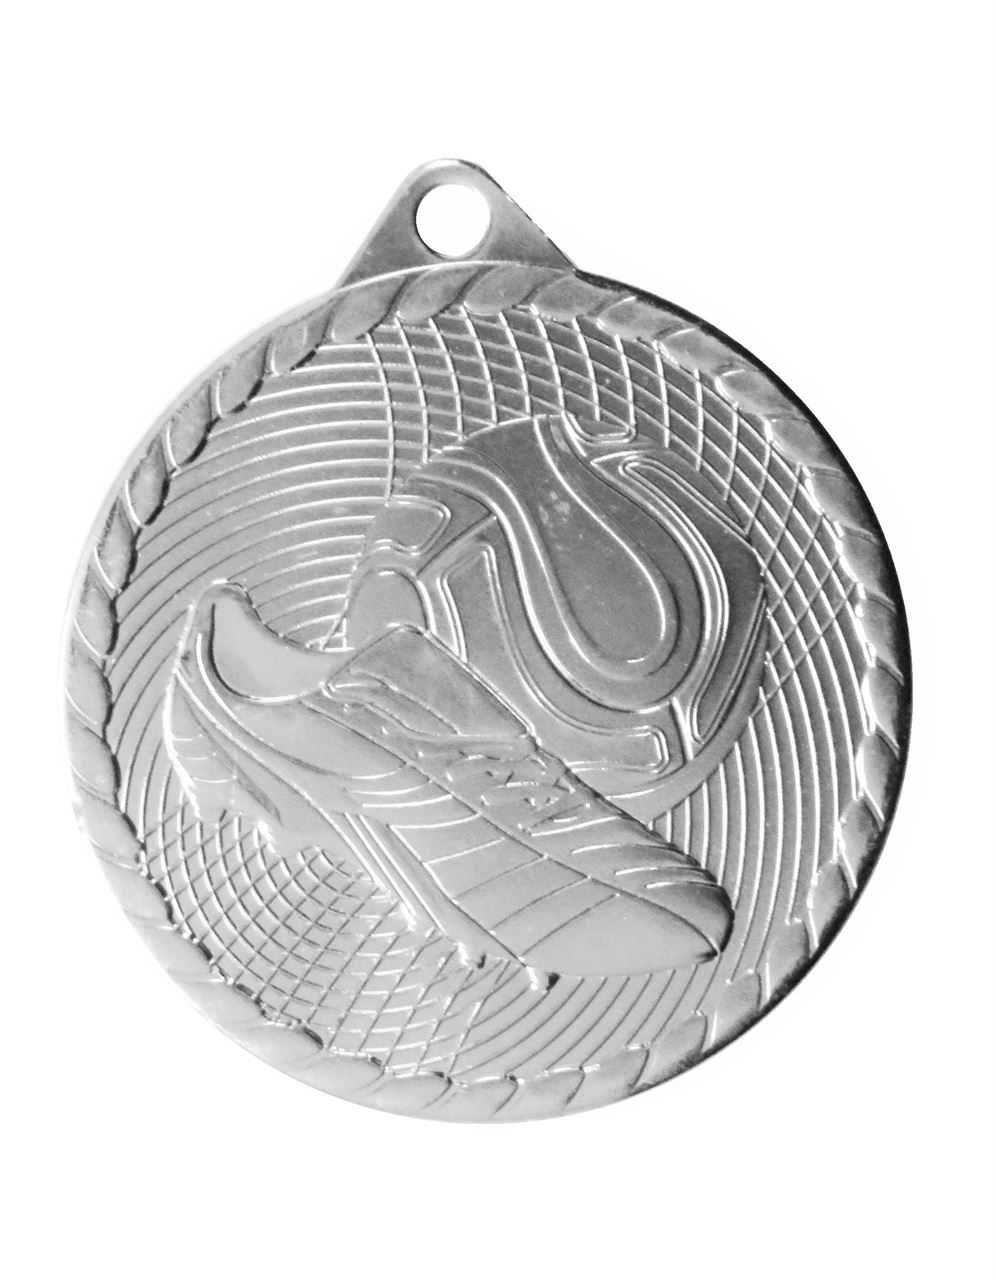 Silver Isoline Economy Football Medal (size: 50mm) - 63851